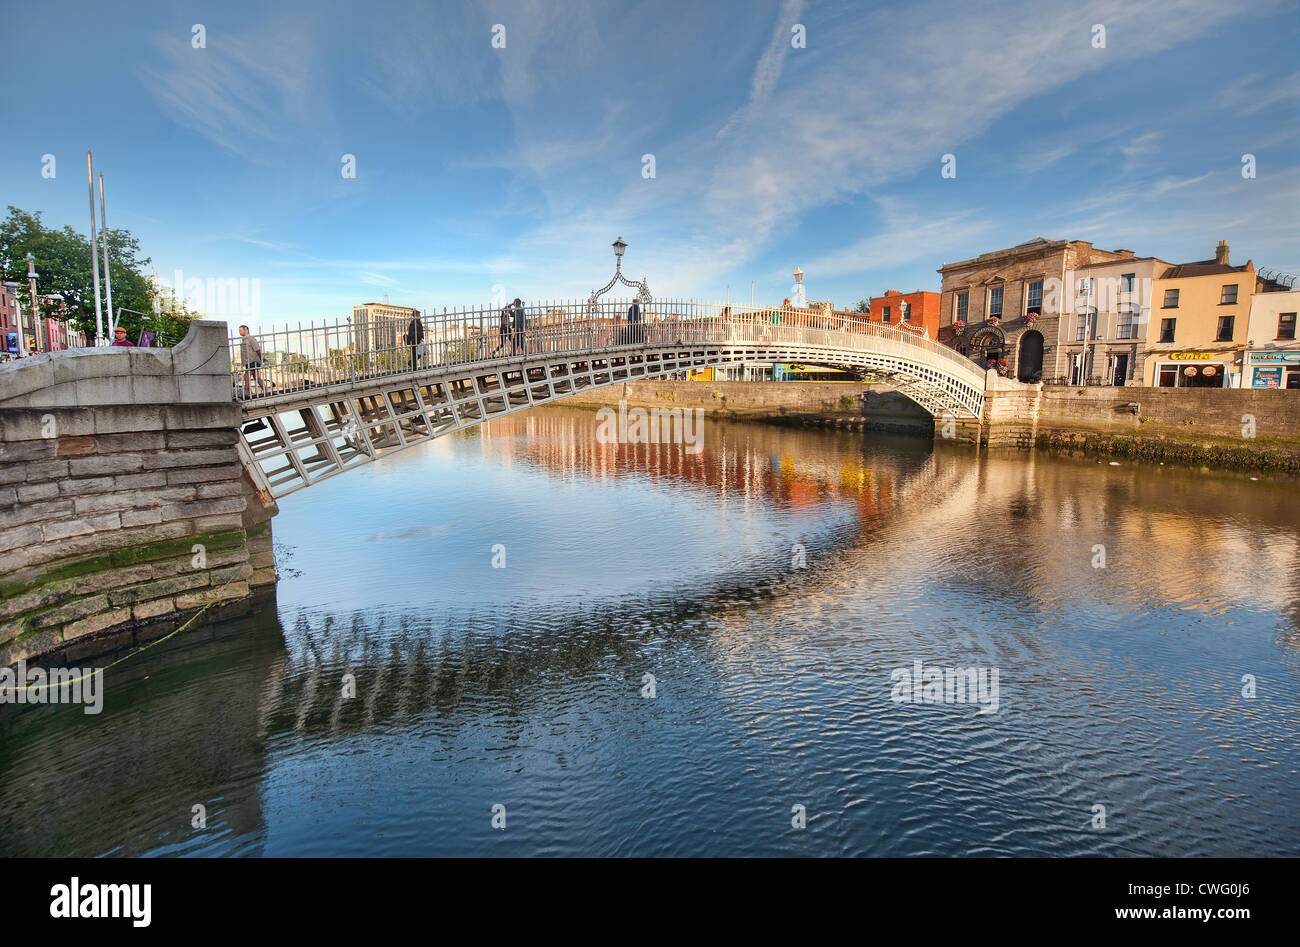 The Halfpenny Bridge over the River Liffey in Dublin, Ireland in Summer - Stock Image